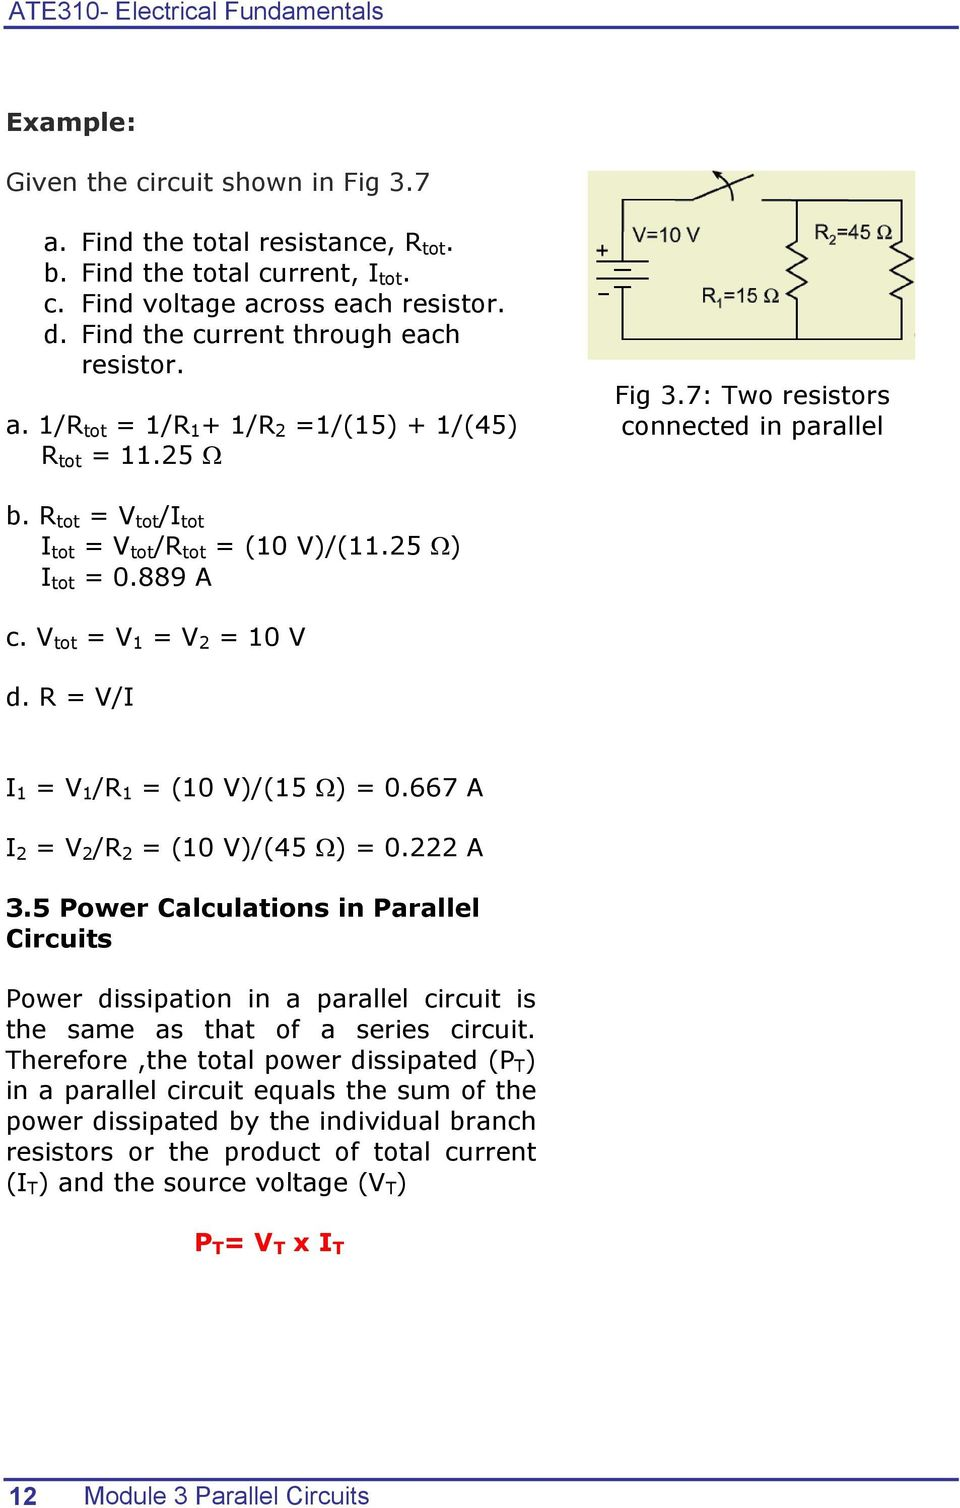 Electrical Fundamentals Module 3 Parallel Circuits Pdf Series Circuit Examples Real Life Added To The R Tot V I